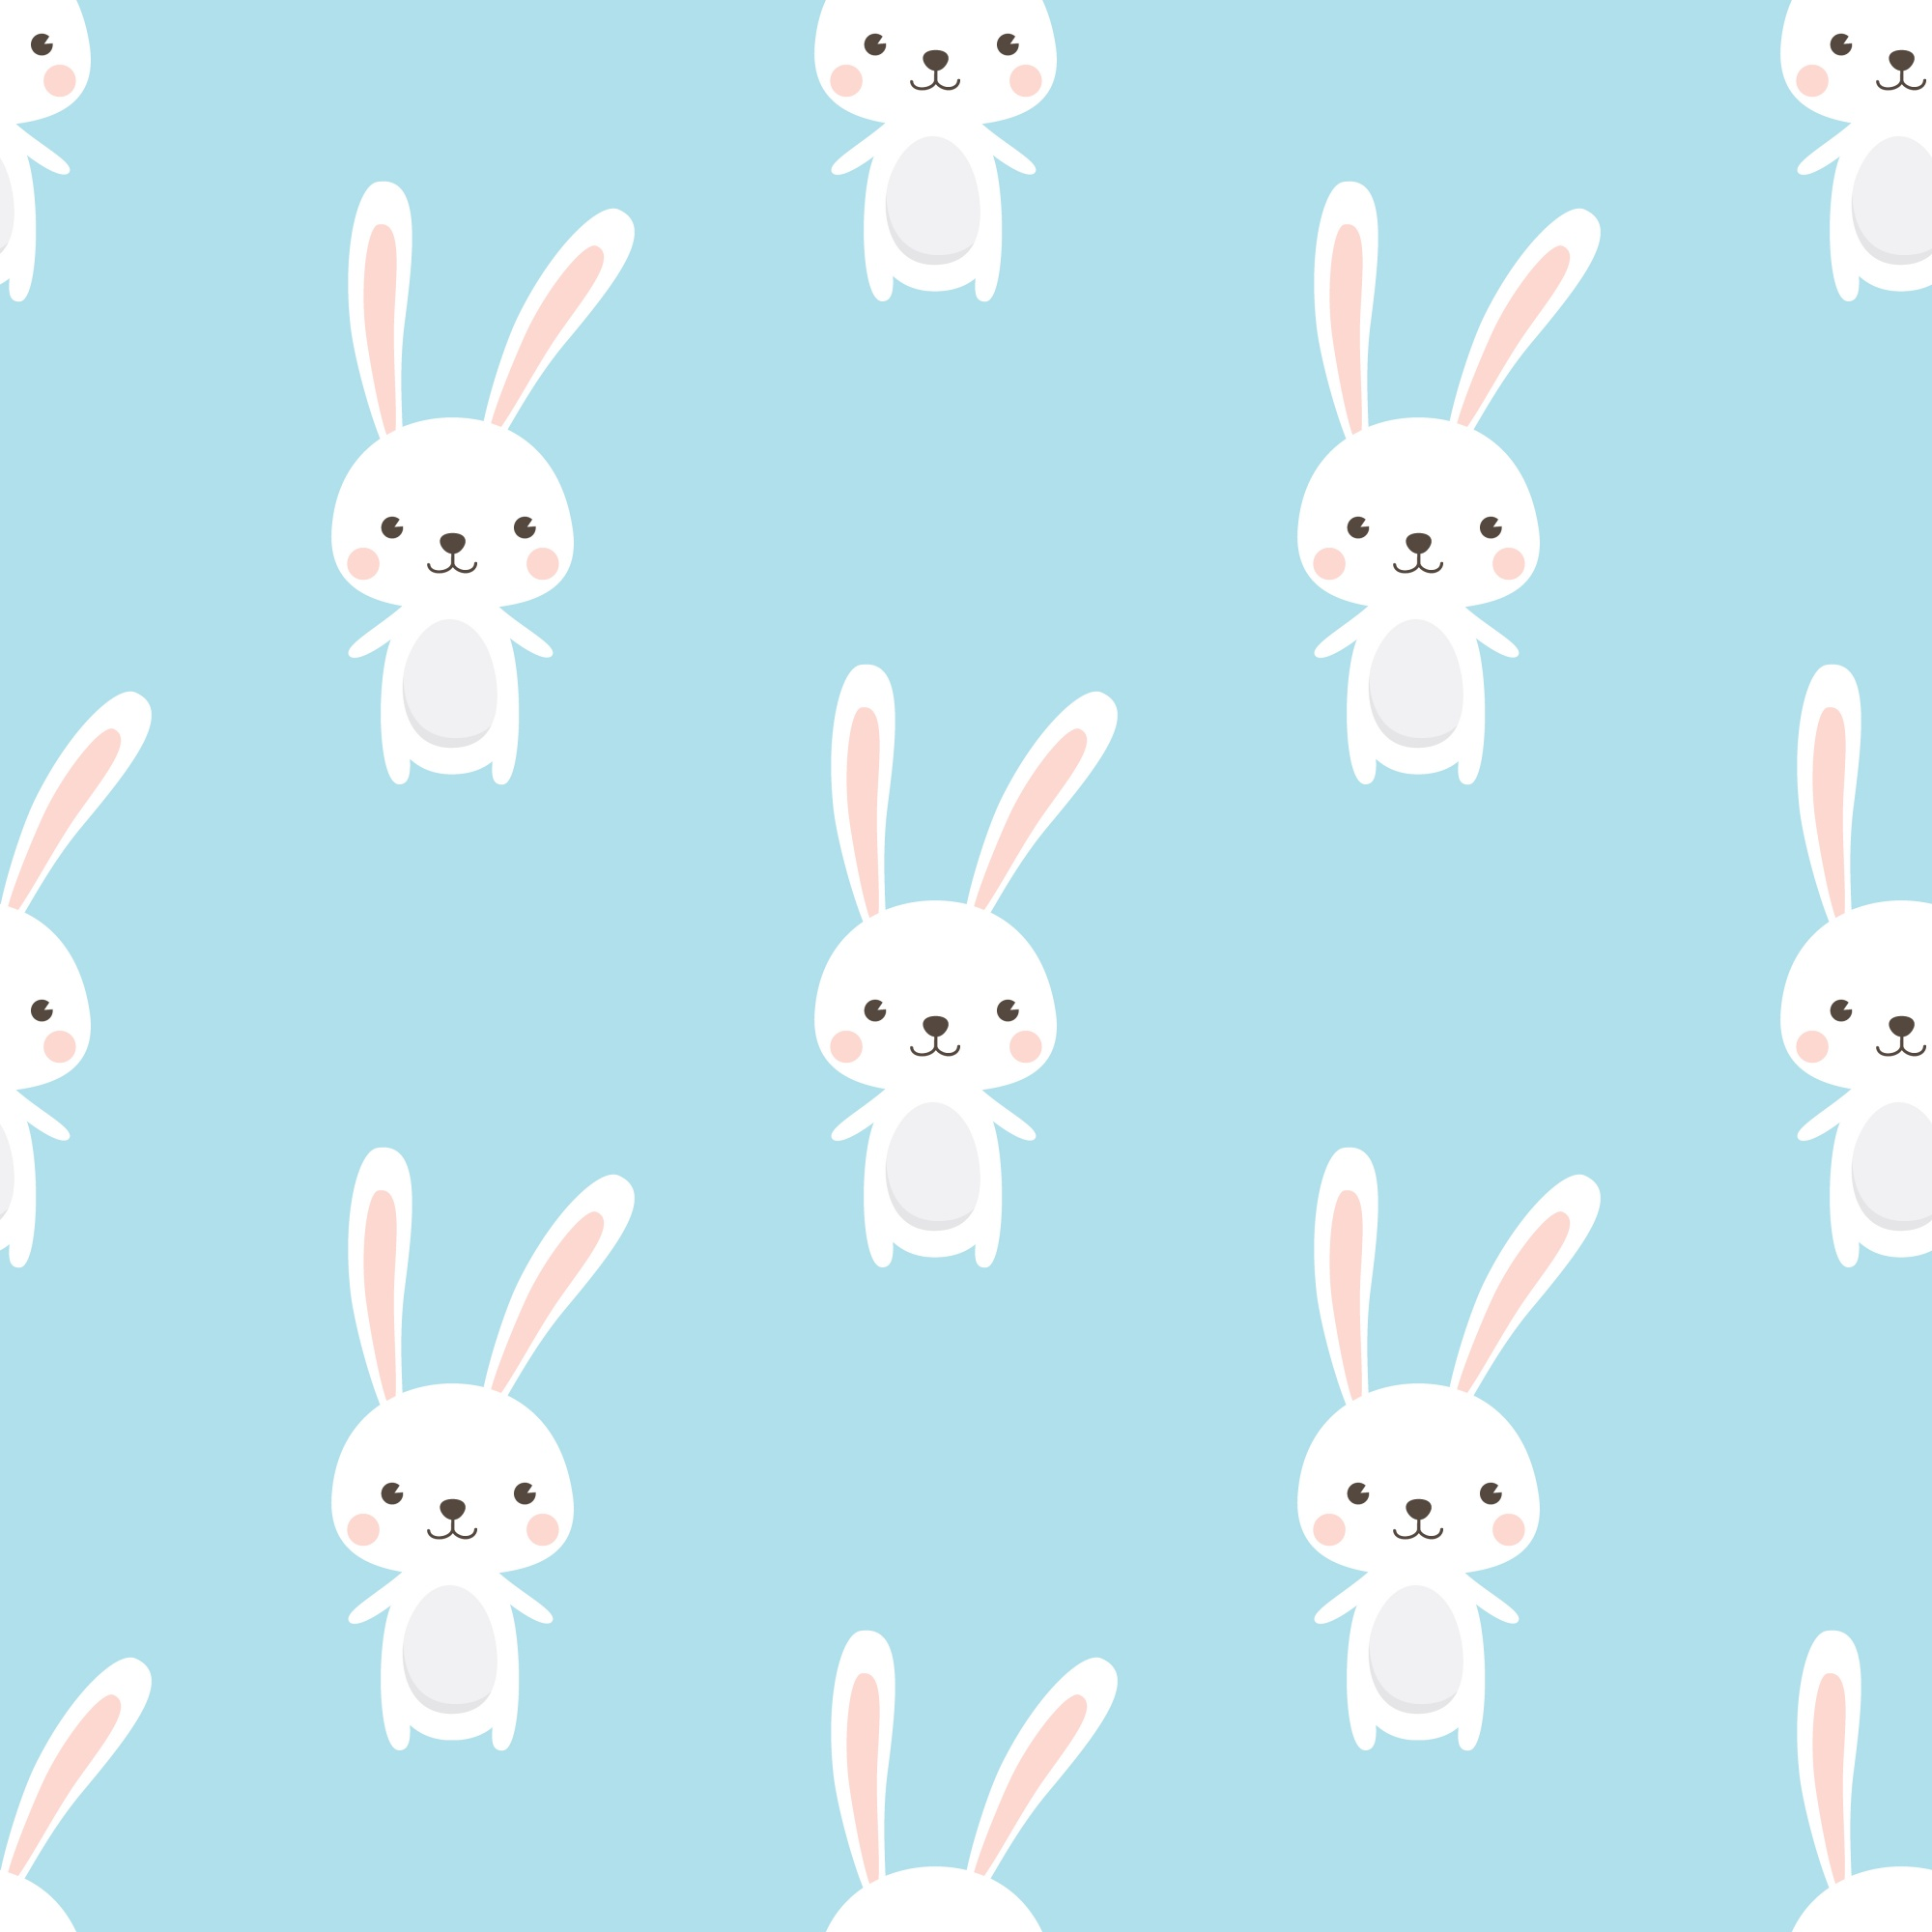 Cute Rabbit character Seamless pattern on blue sky background